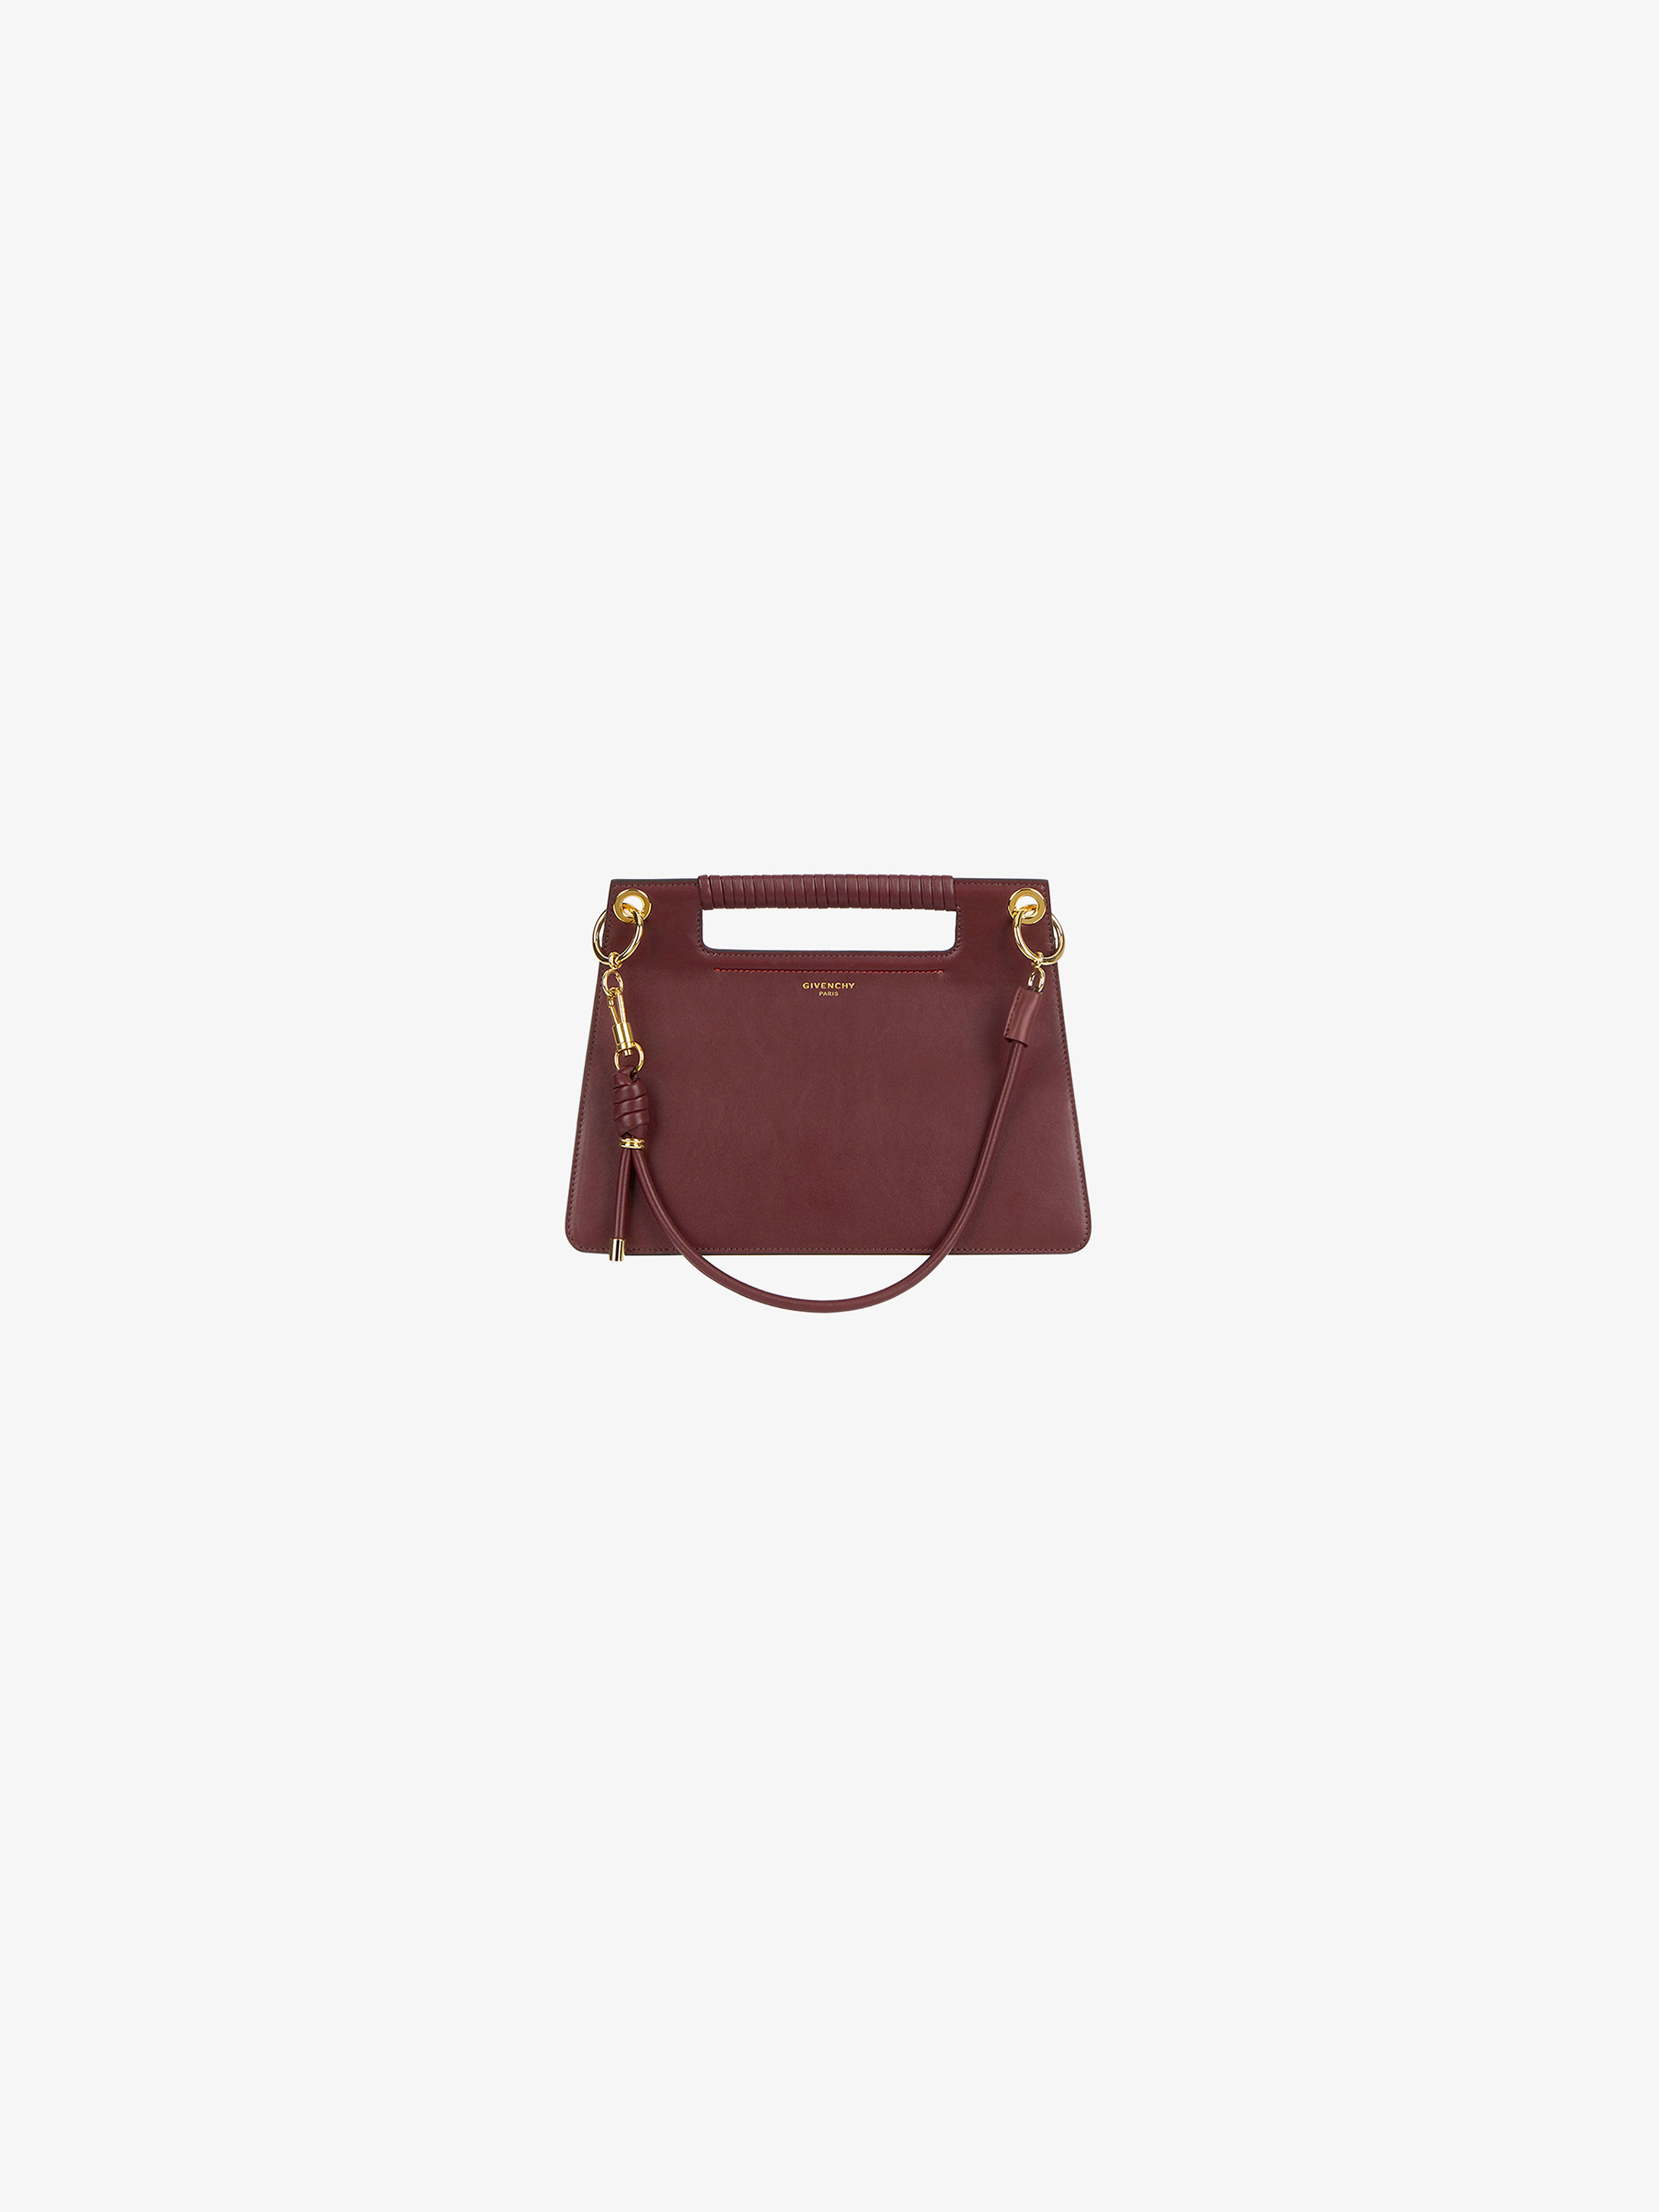 Medium Whip bag with contrasting details